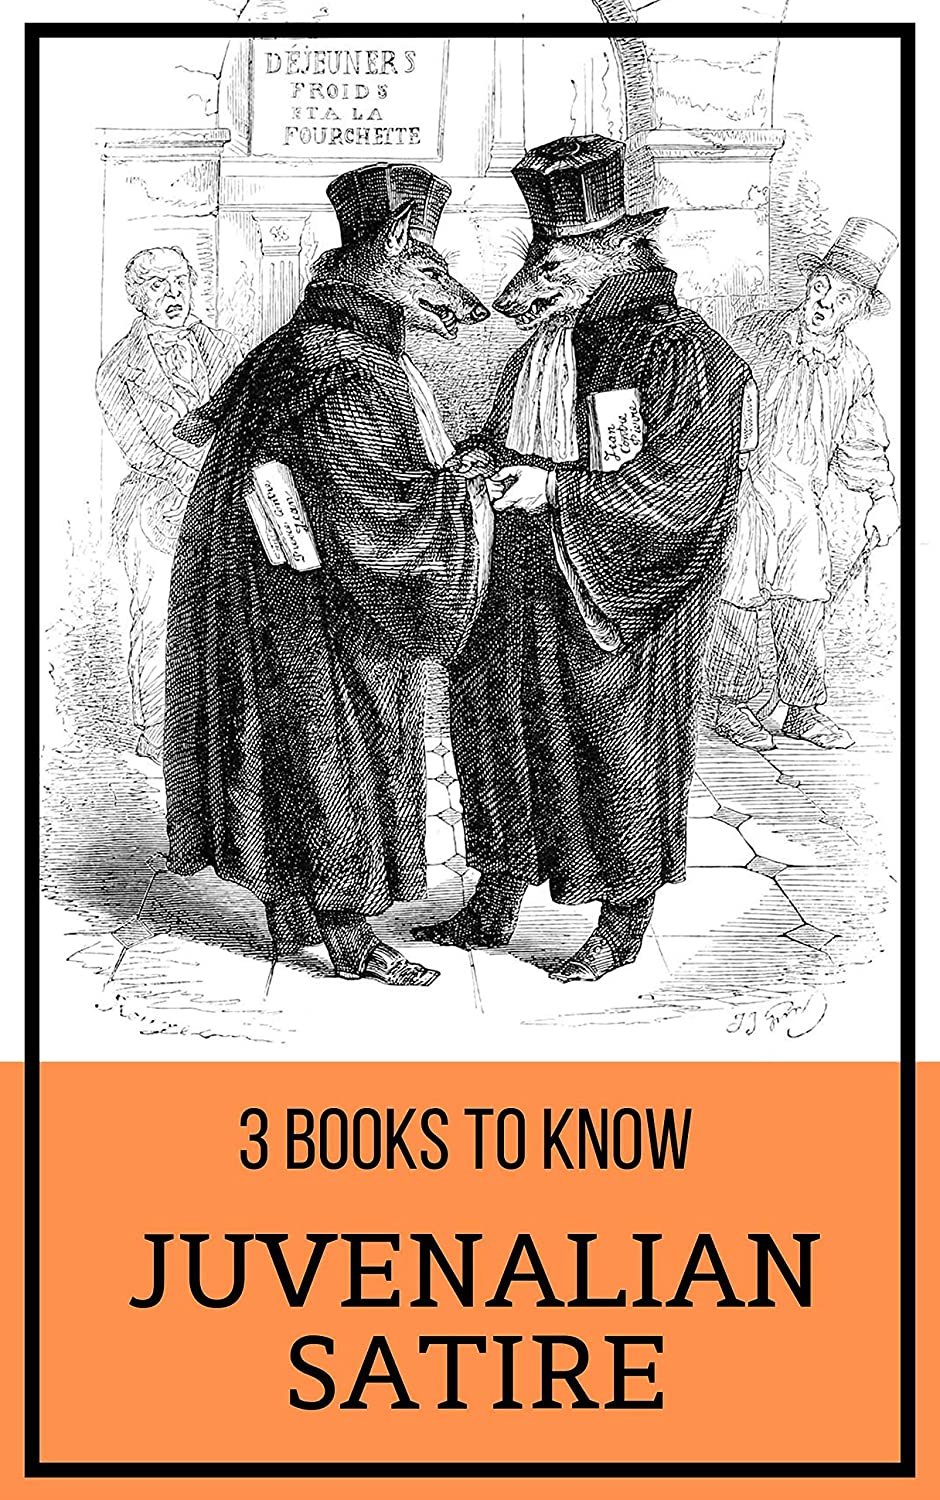 3 Books To Know Juvenalian Satire Ebook Jonathan Swift Lord